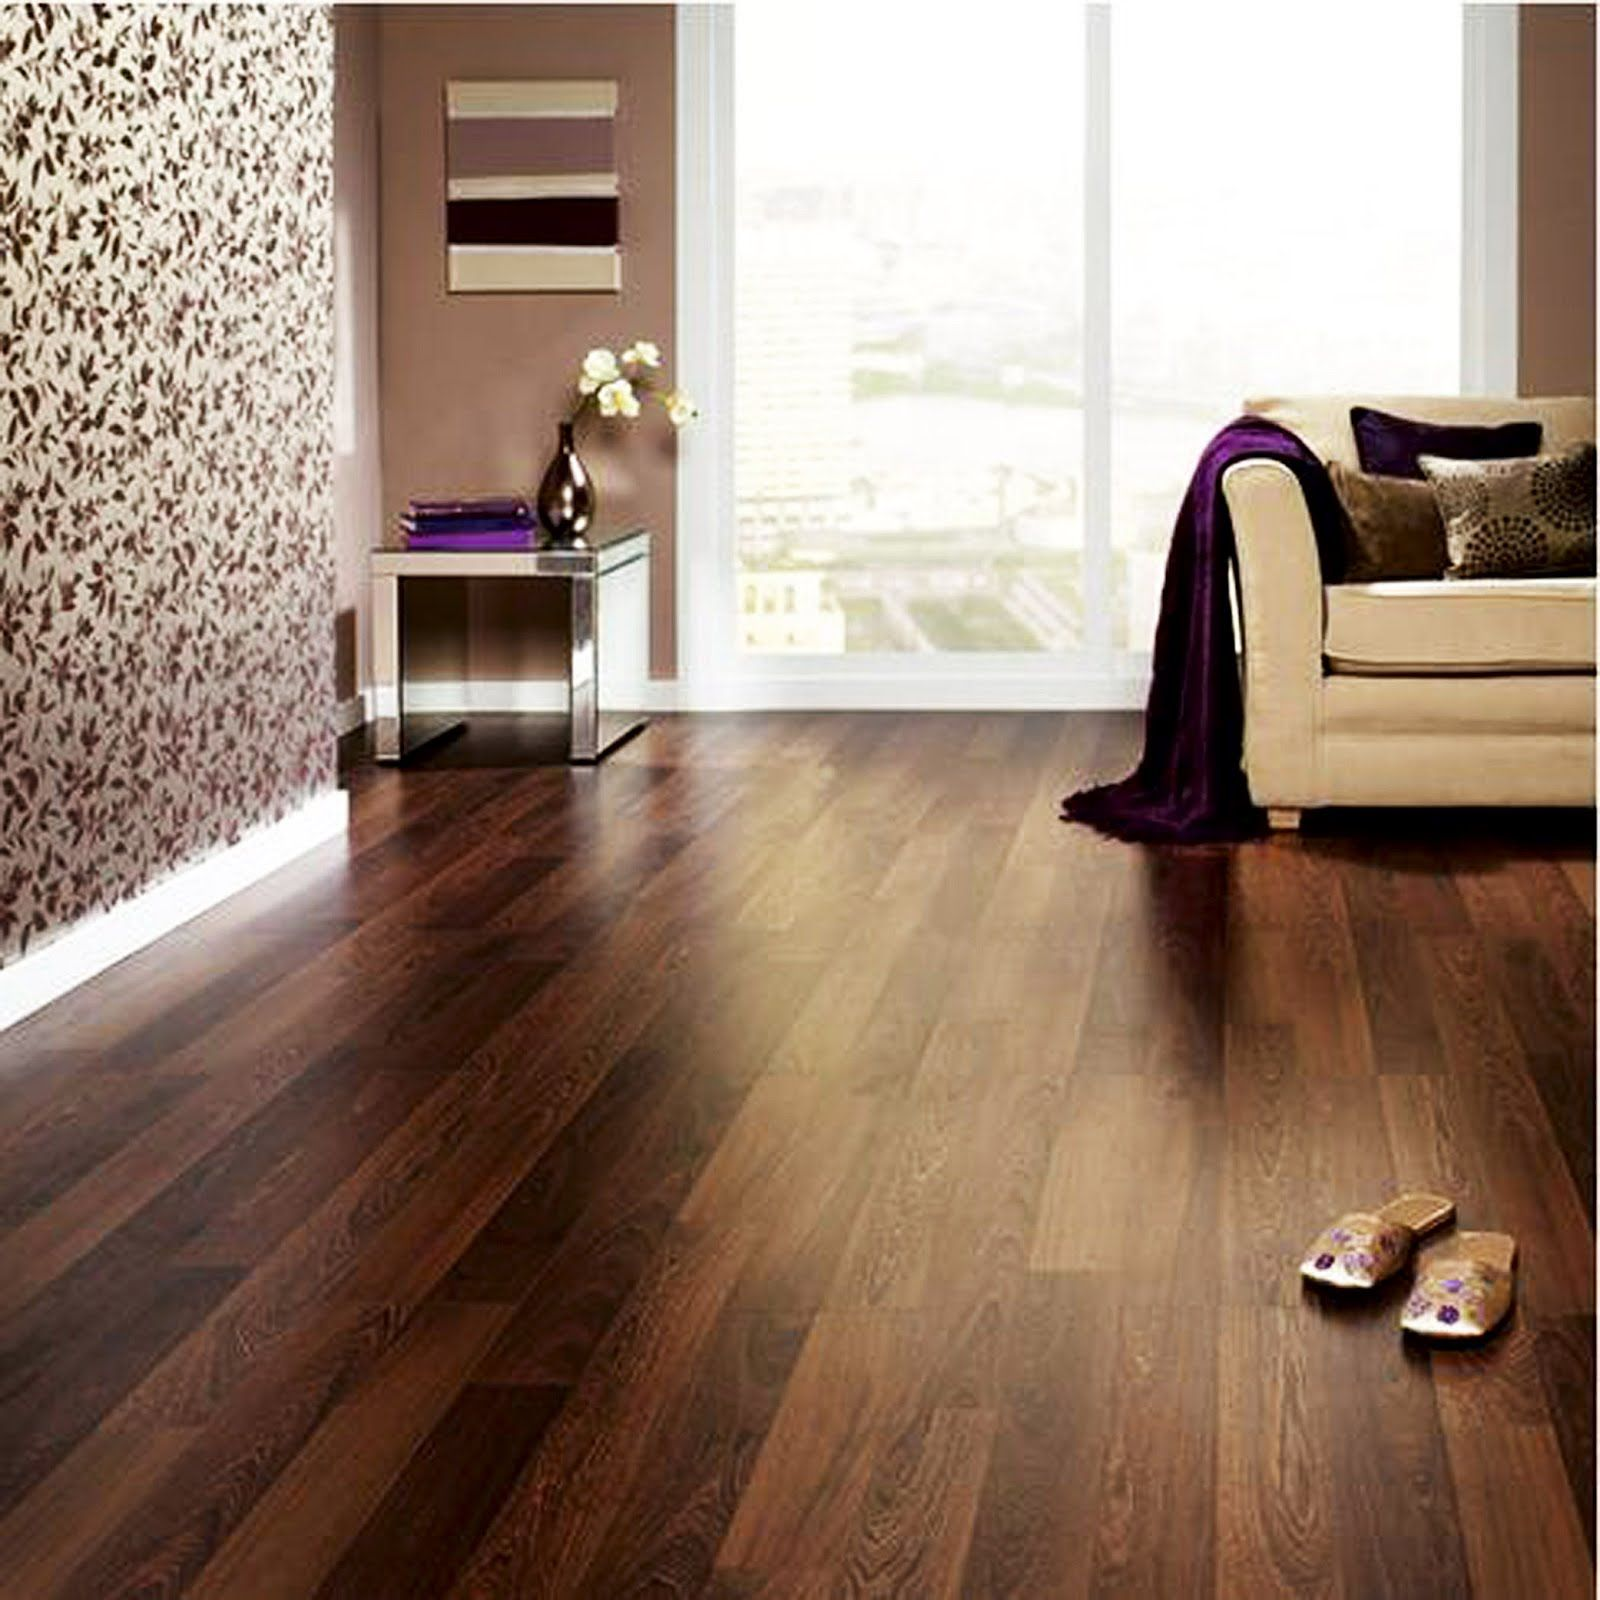 kitchen laminate flooring Want To Know The Different Types Of Laminate Flooring laminateflooring floorings homedecoration